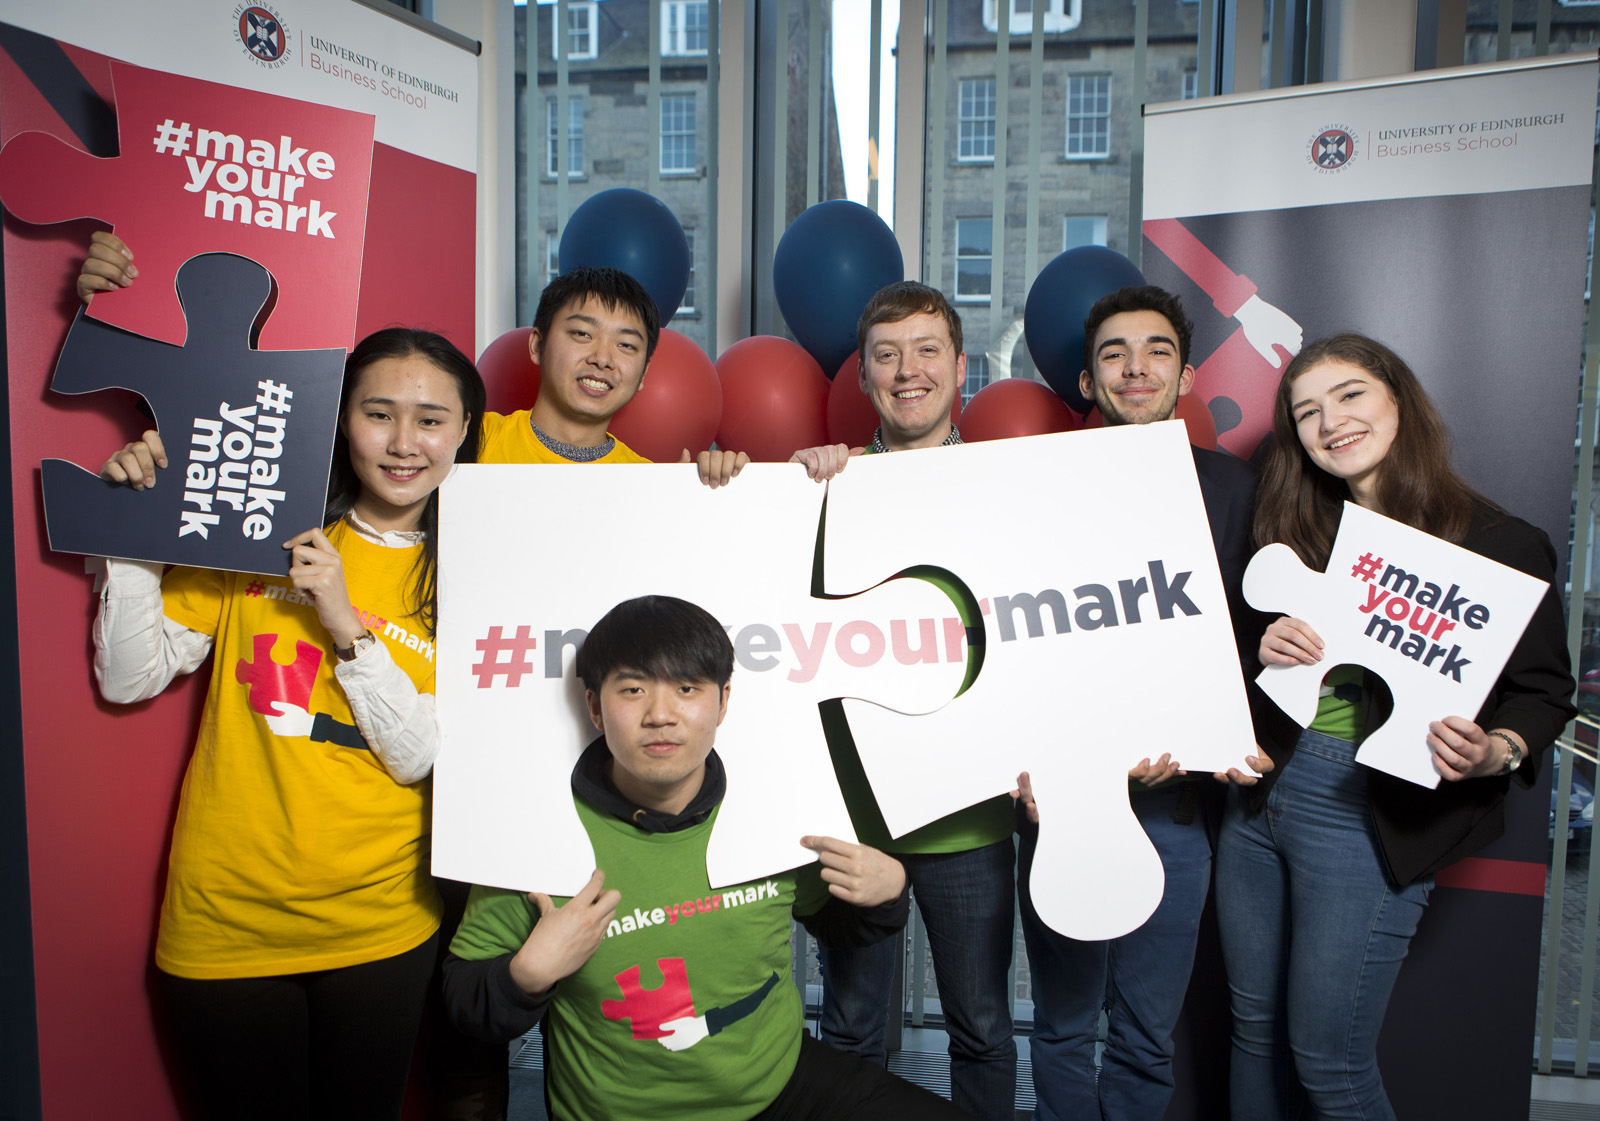 Makeyourmark2019 by Eoin Carey